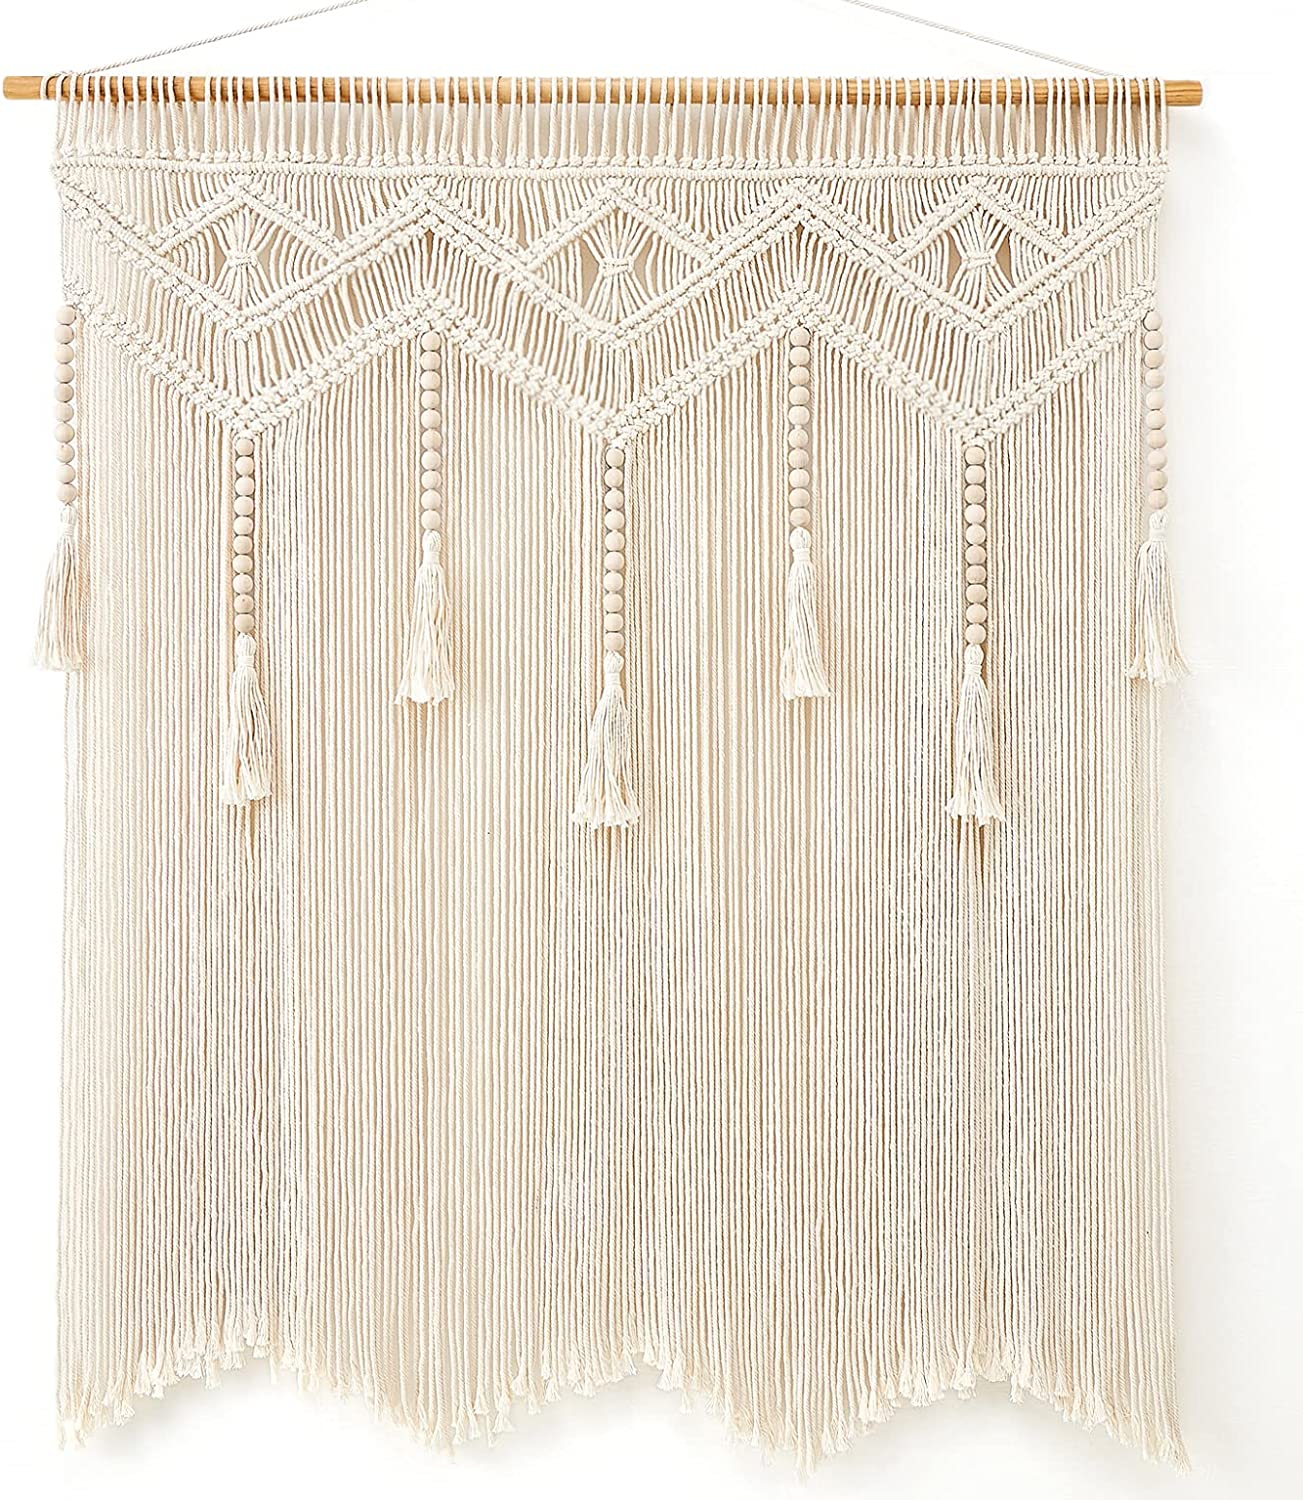 Mkono Macrame Wall Hanging Large Boho Decor Chic Home Tapestry Bohemian Tassel Woven Wall Art Decoration for Bedroom Living Room Dorm Apartment Over Bed Wall Decor Backdrop, 36''W x 42''H